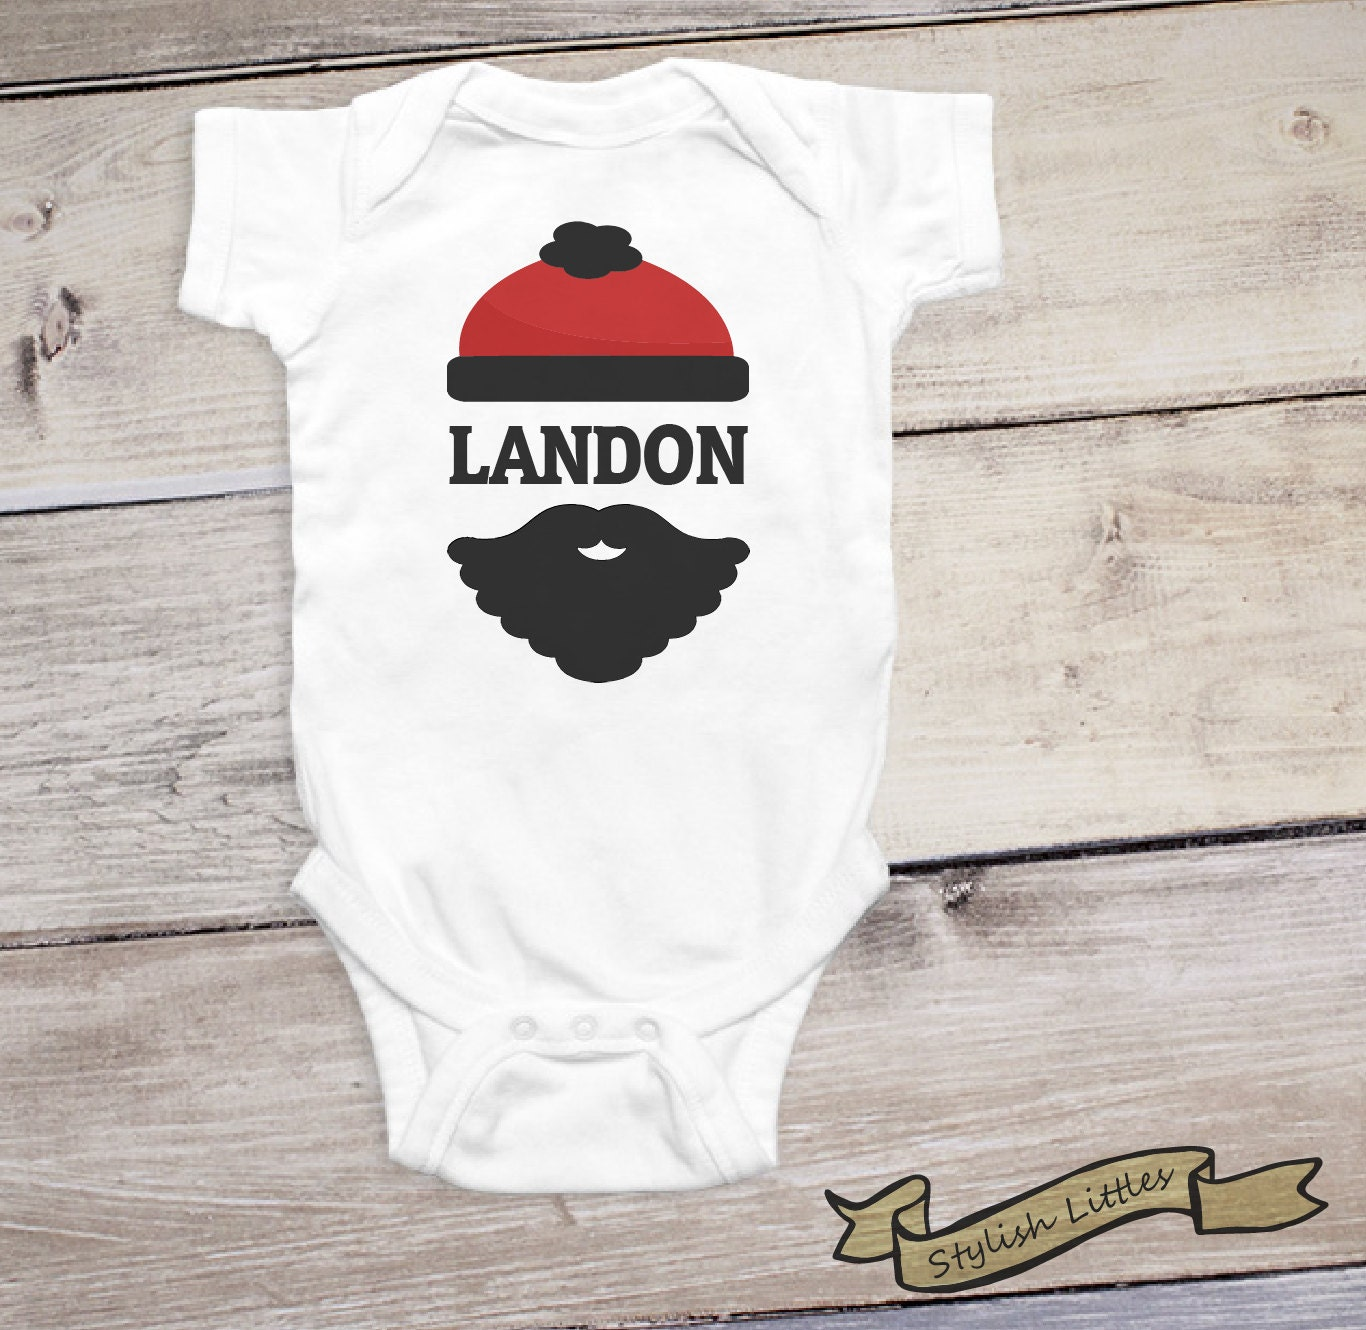 Personalized baby gifts for boy onesie lumberjack baby outfit personalized baby gifts for boy onesie lumberjack baby outfit custom name shirt personalized onesie boy negle Choice Image